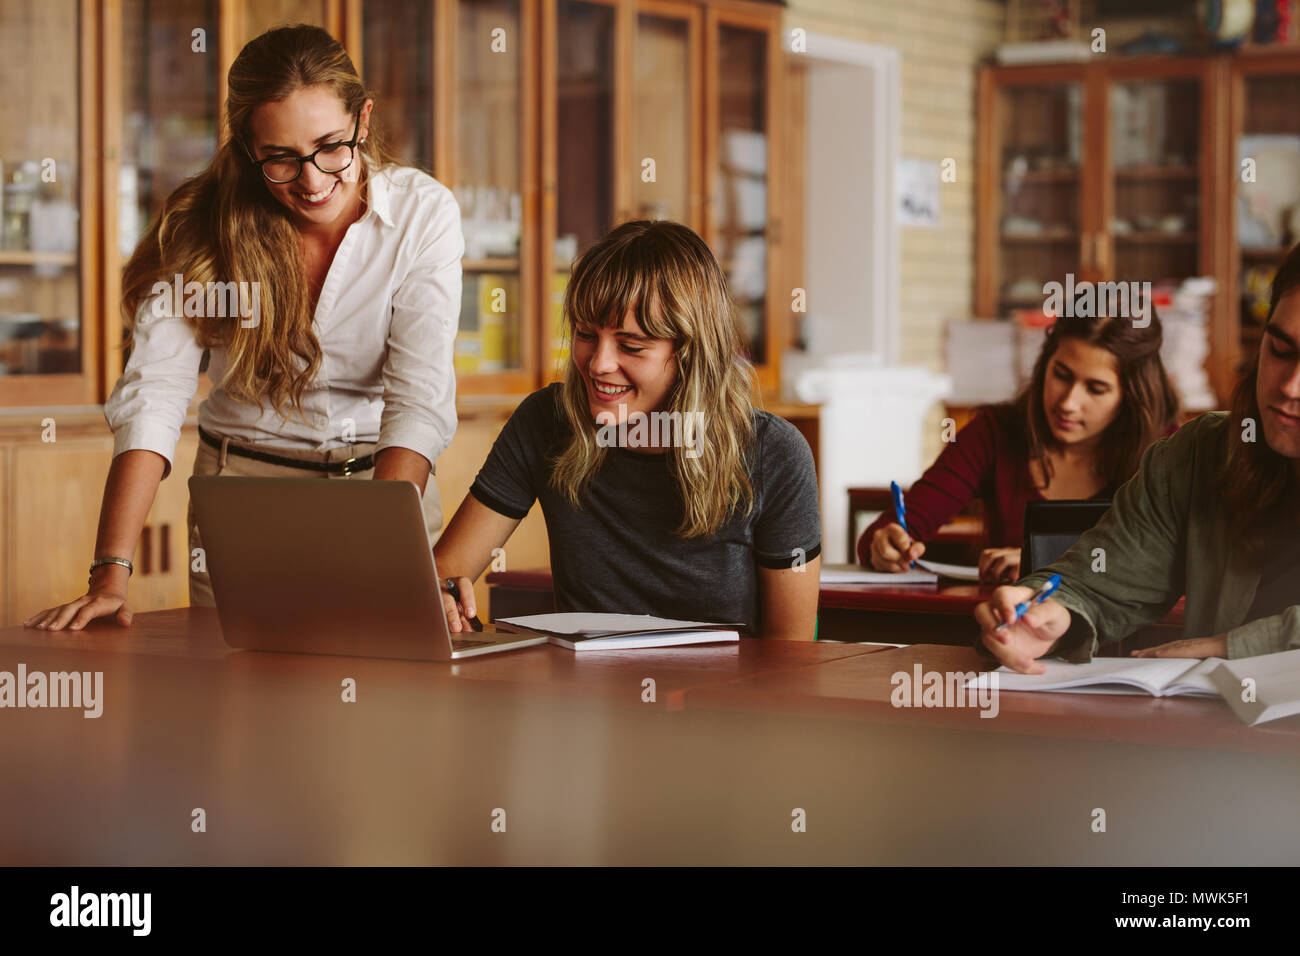 Happy teacher helping her student at the high school. Woman using laptop with her teacher standing by and smiling in classroom. - Stock Image